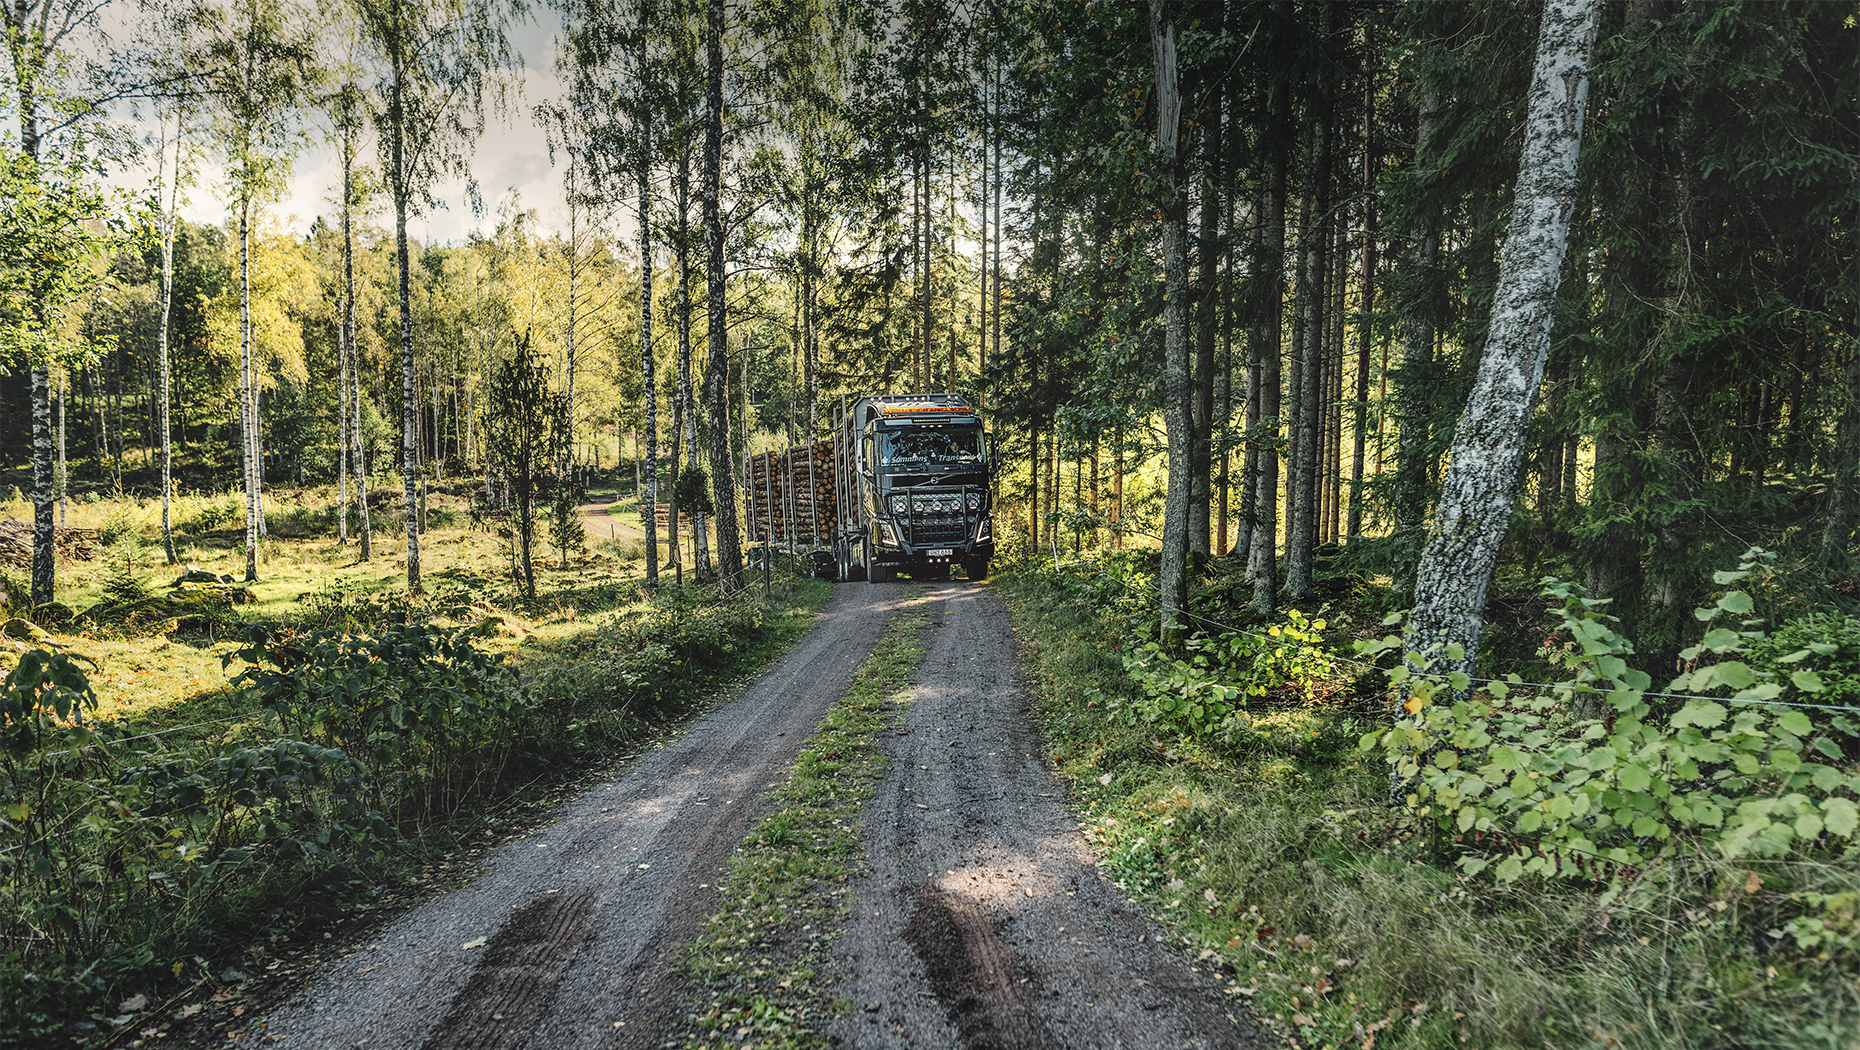 Timber transport in Sweden.